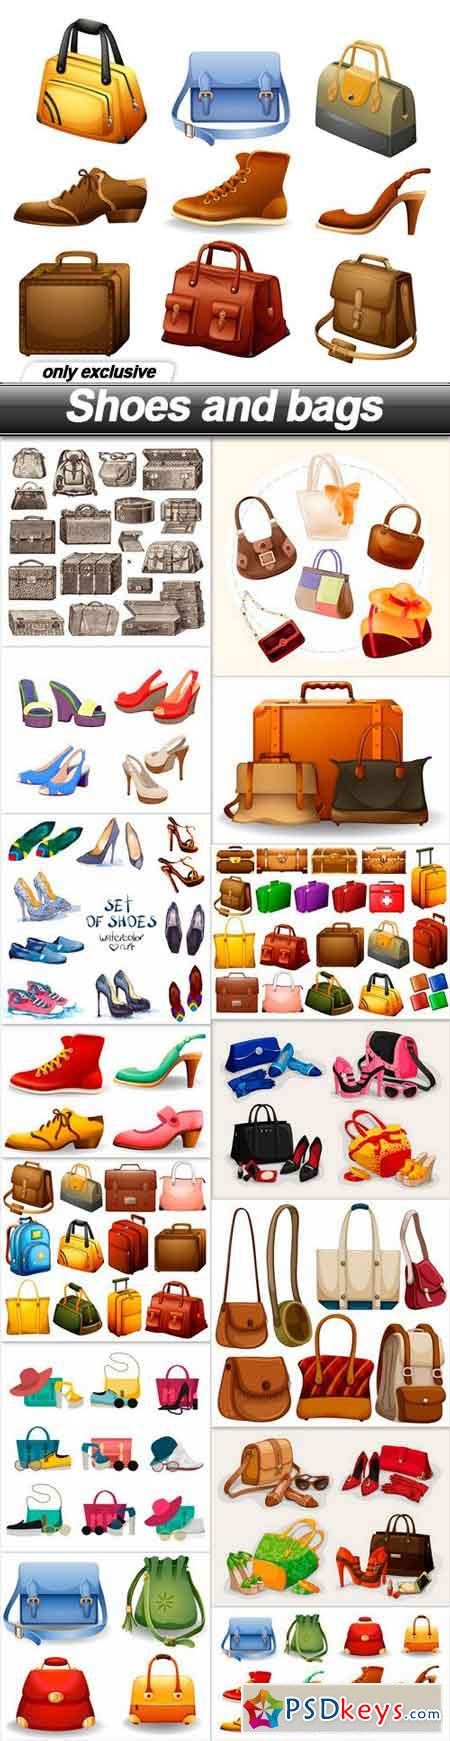 Shoes and bags - 15 EPS